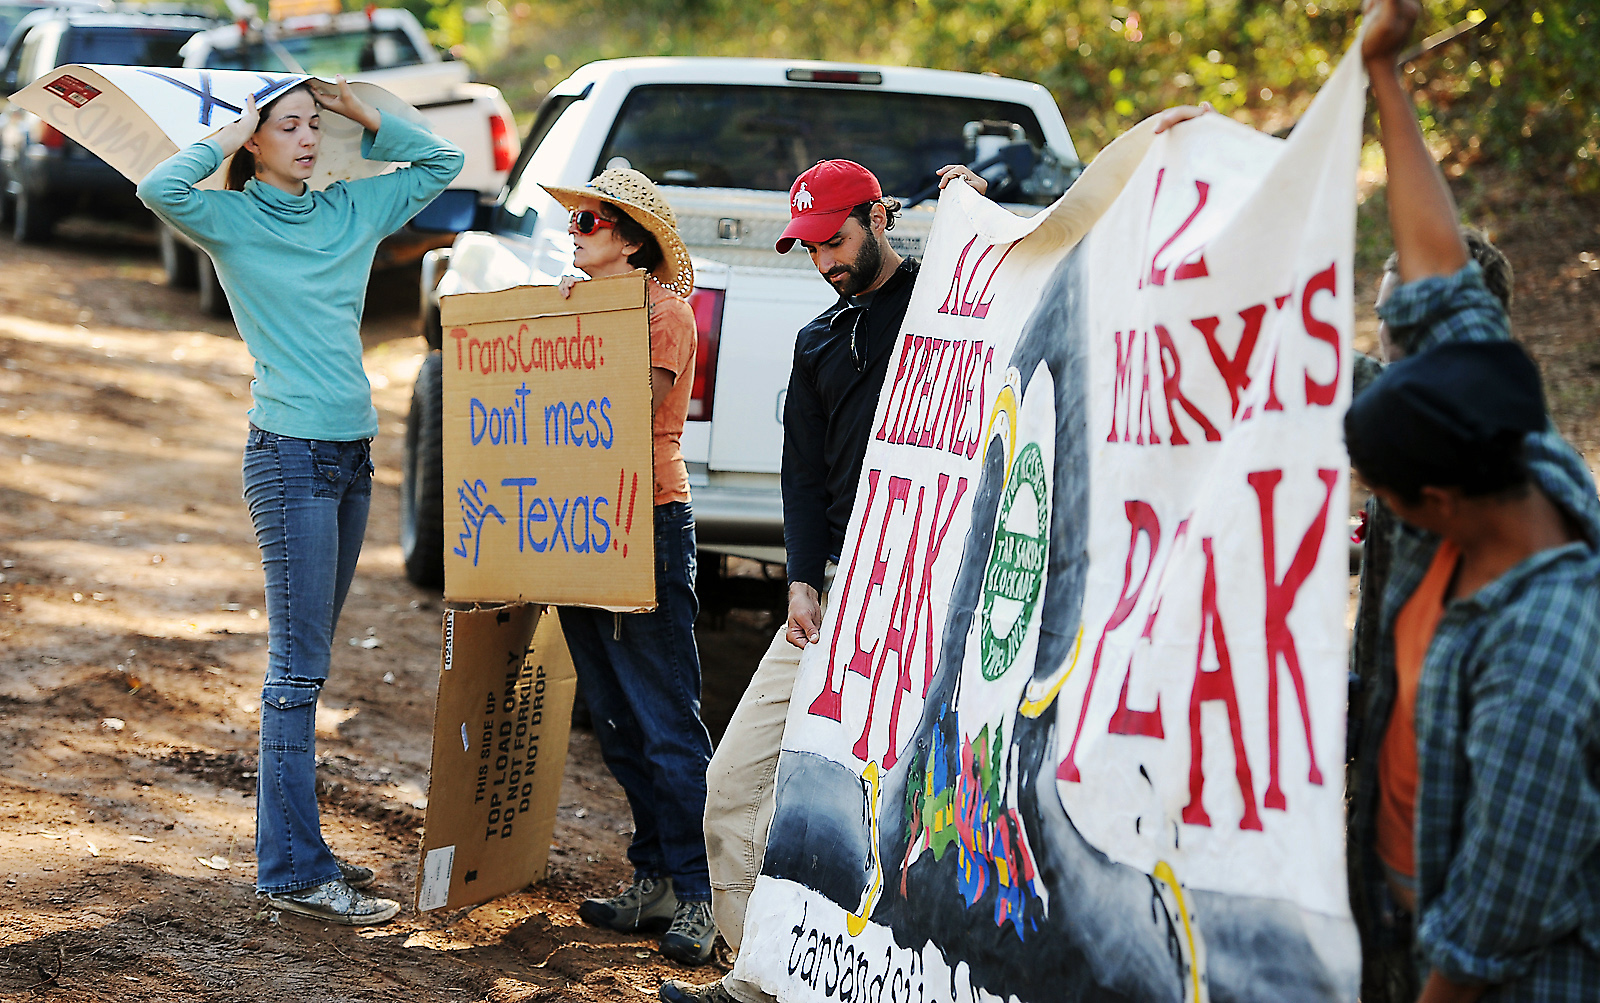 Spokesperson Cindy Spoon, left, talks with protesters at the future site of the Keystone XL/Trans-Canada Pipeline on Texas Highway 204 in 2012.